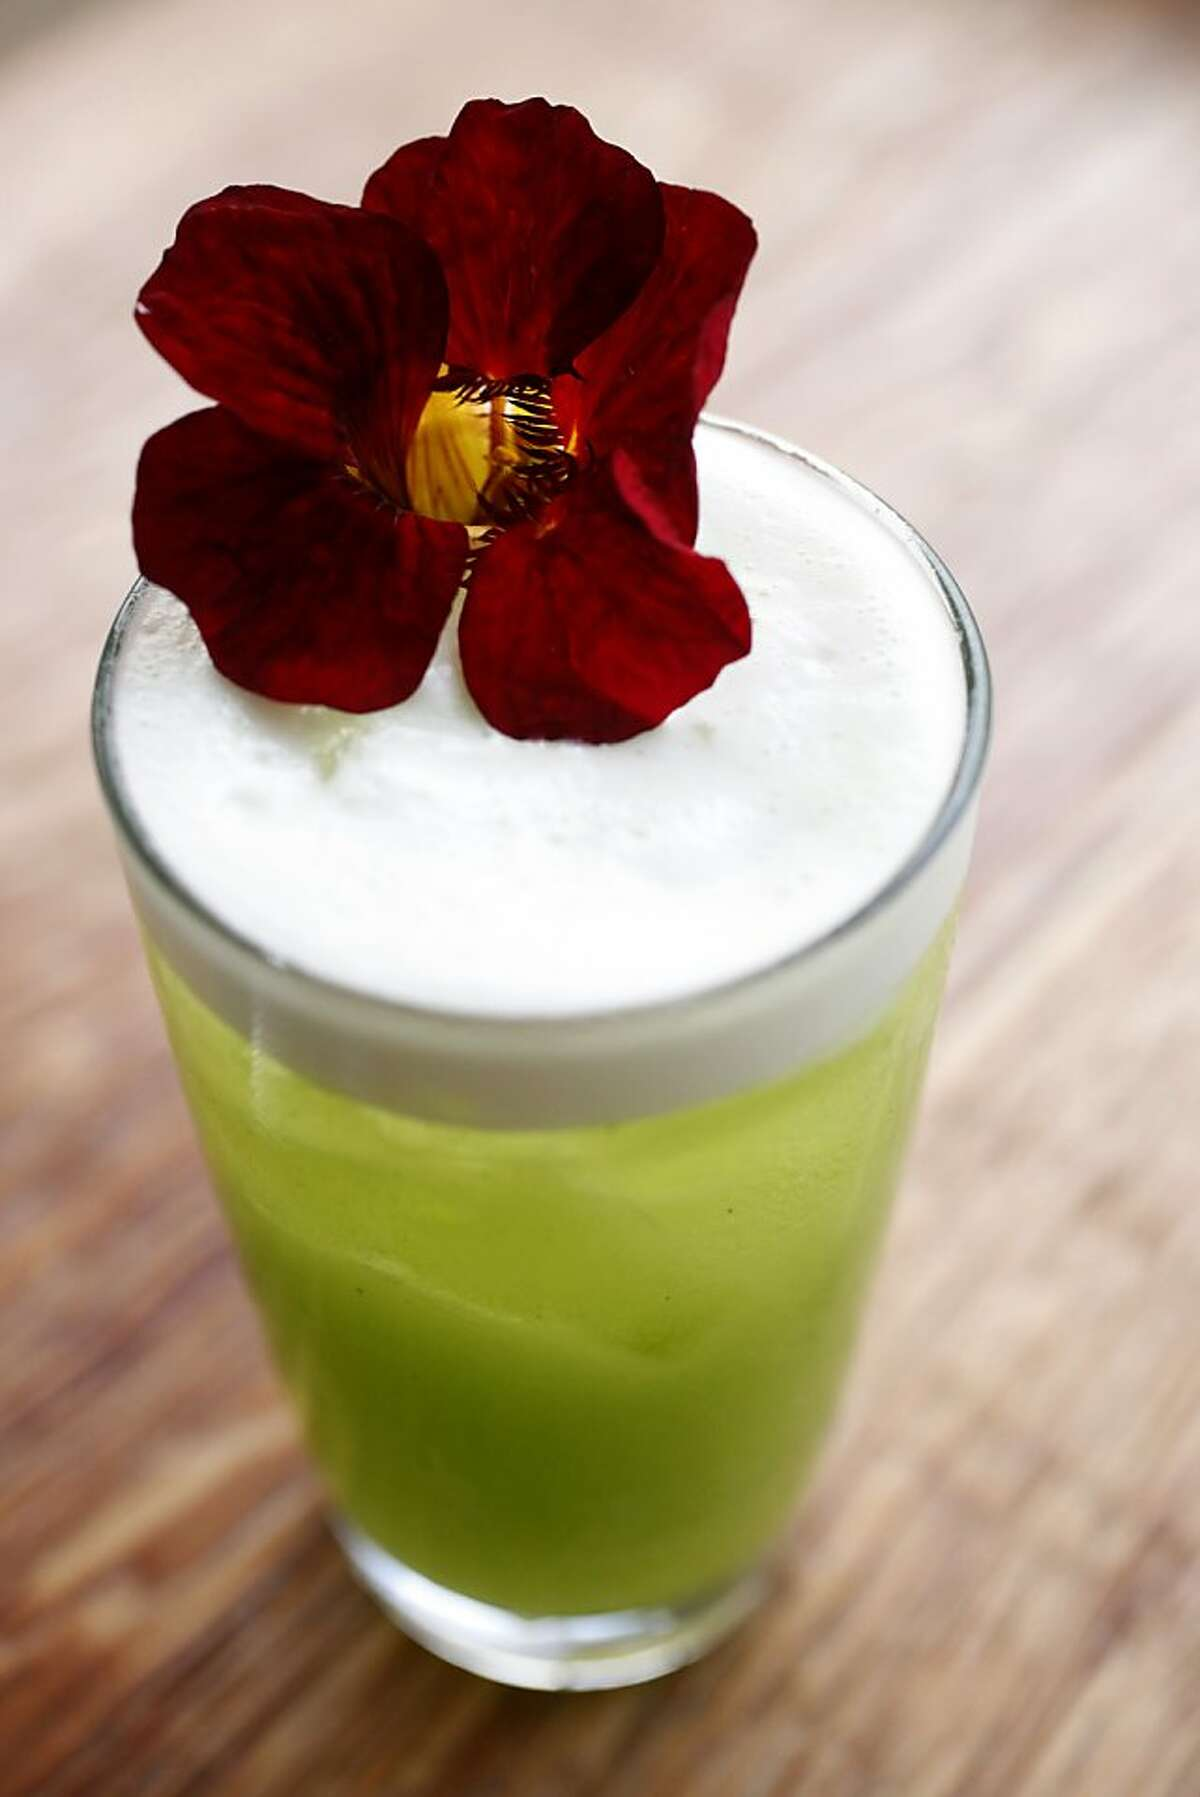 The 'Big Night II' signature cocktail garnished with a nasturtium as seen at Rich Table in San Francisco, Calif. on August 7, 2013.